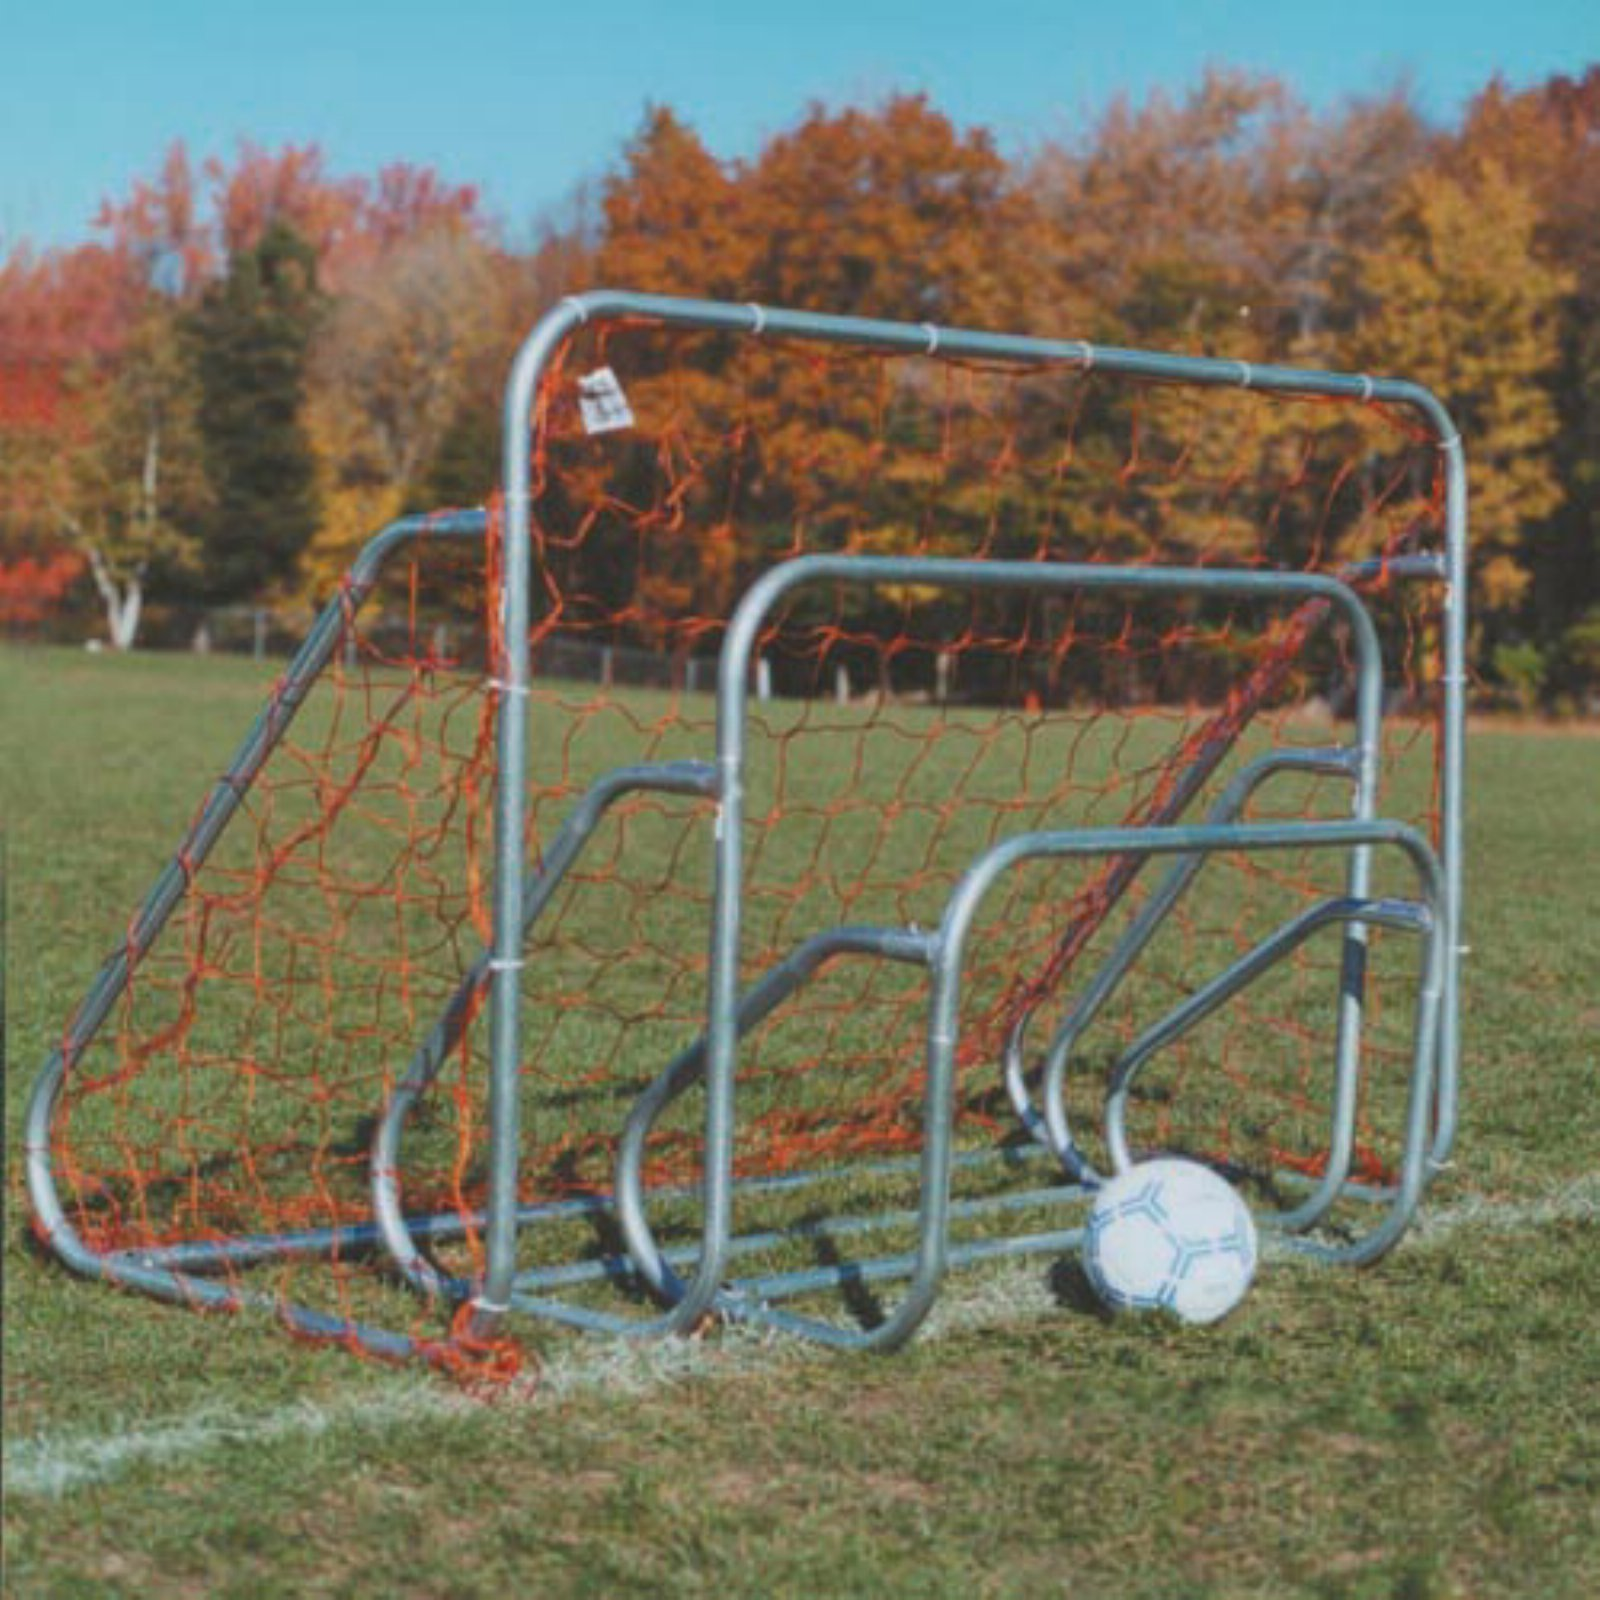 Goal Sporting Small-Sided Steel Soccer Goal with Groundbar